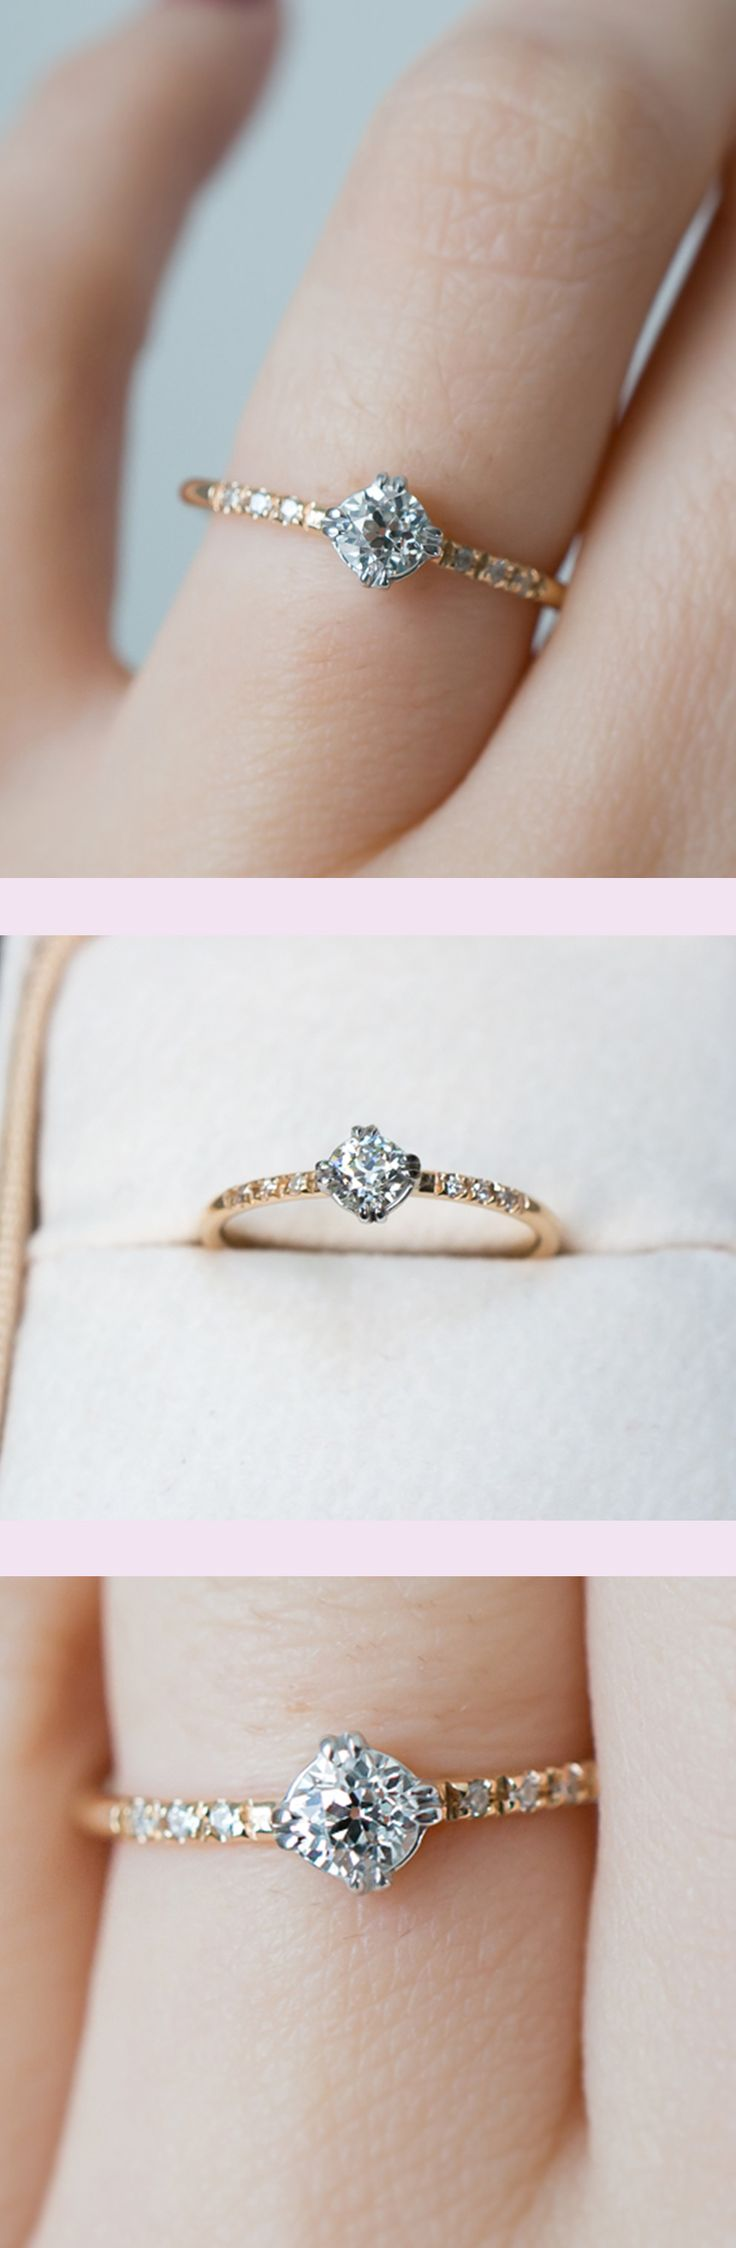 small engagement rings wedding rings under The sweetest vintage diamond engagement ring by S Kind